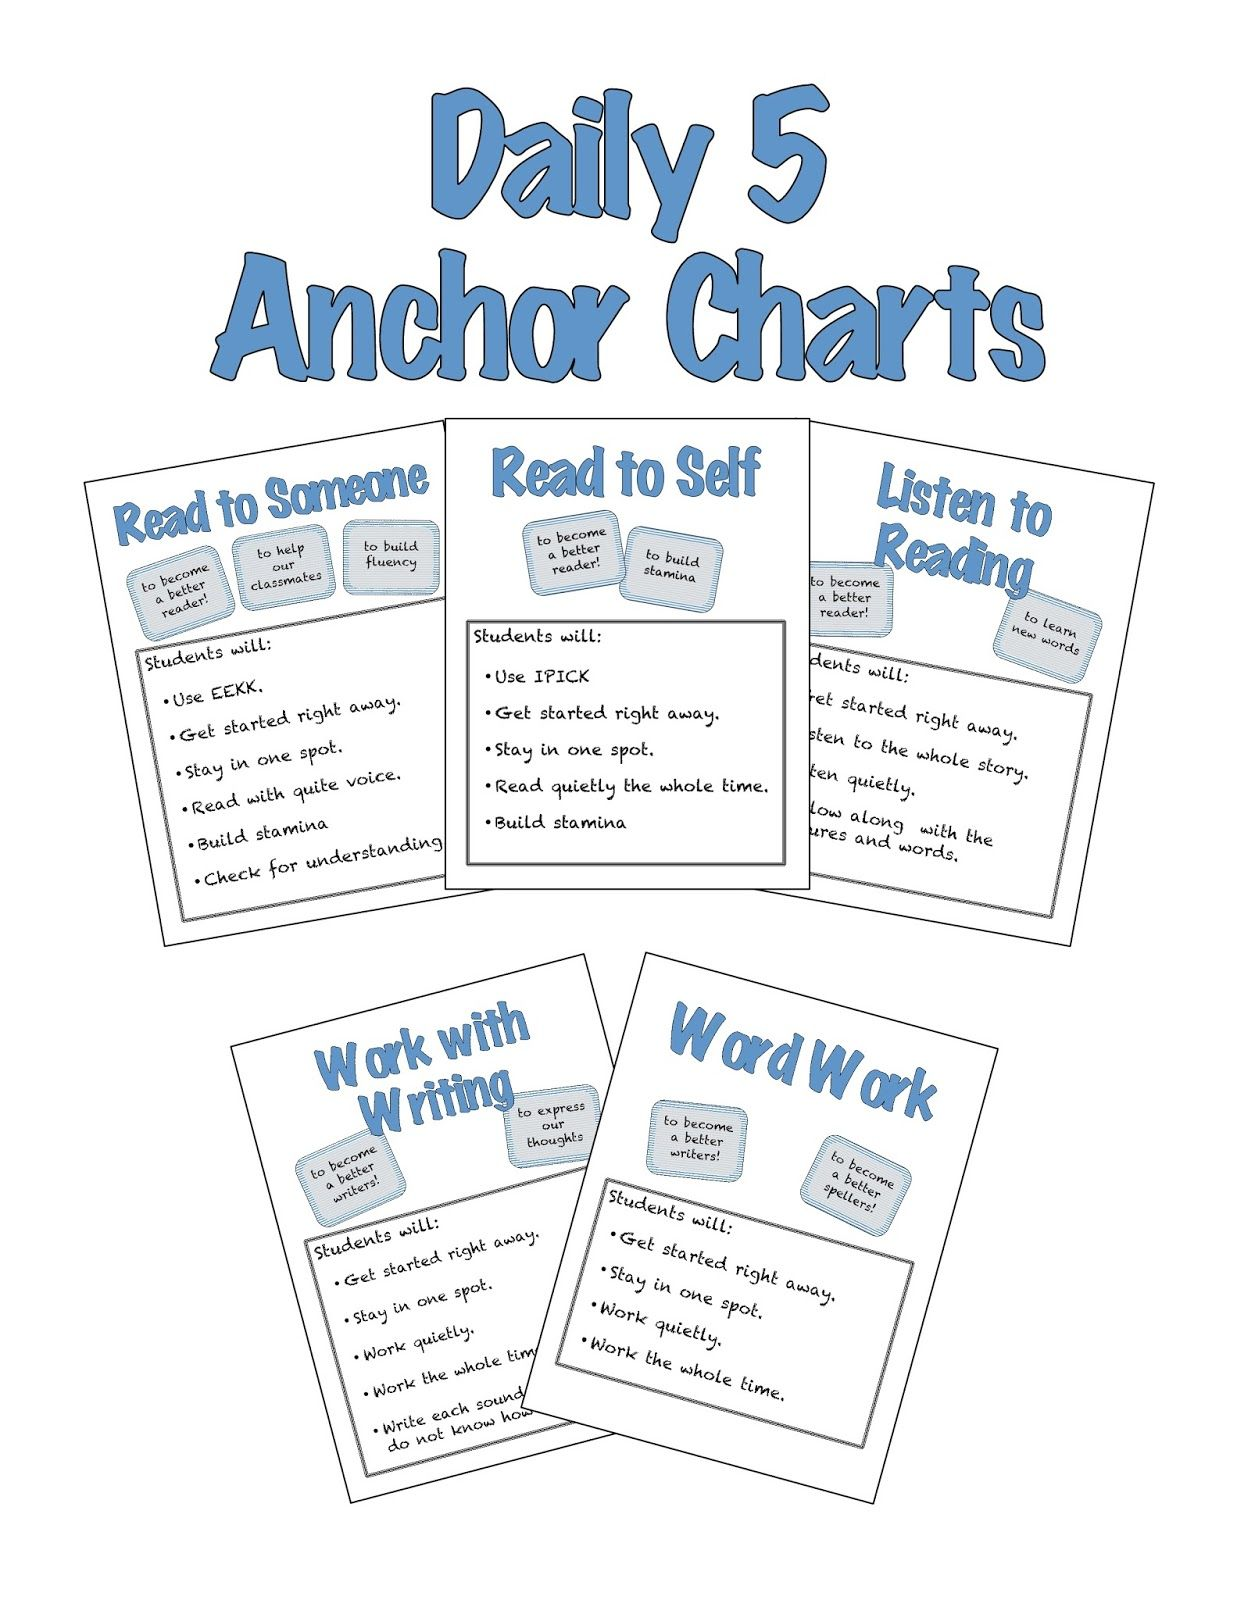 Daily Five Anchor Charts For Read To Self Read To Someone